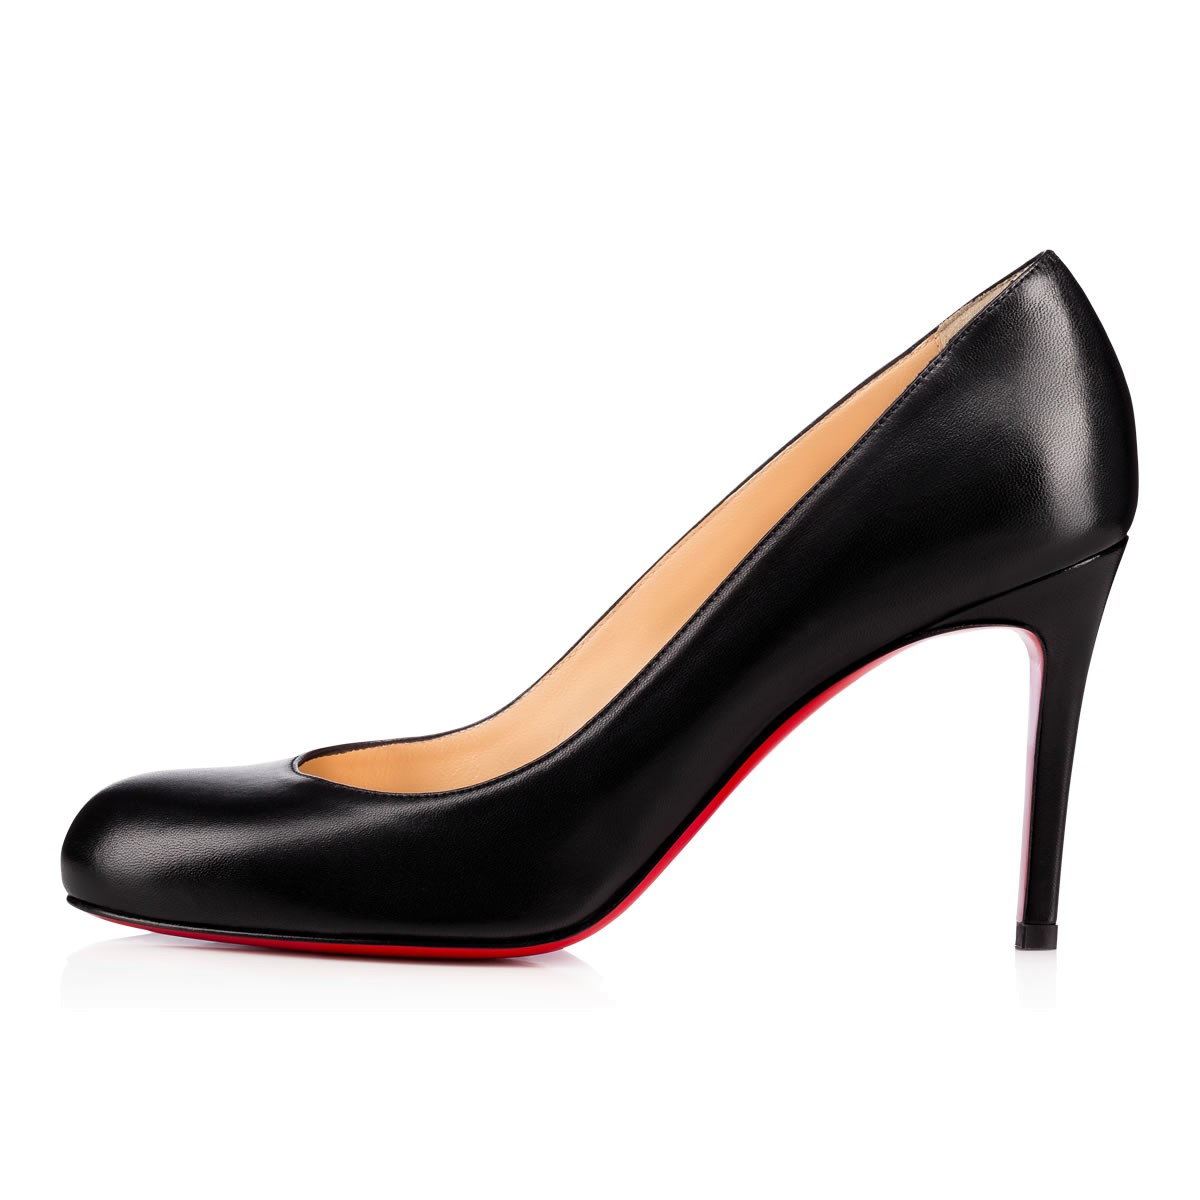 b9da7e5ebf24 ... Shoes - Simple Pump - Christian Louboutin ...